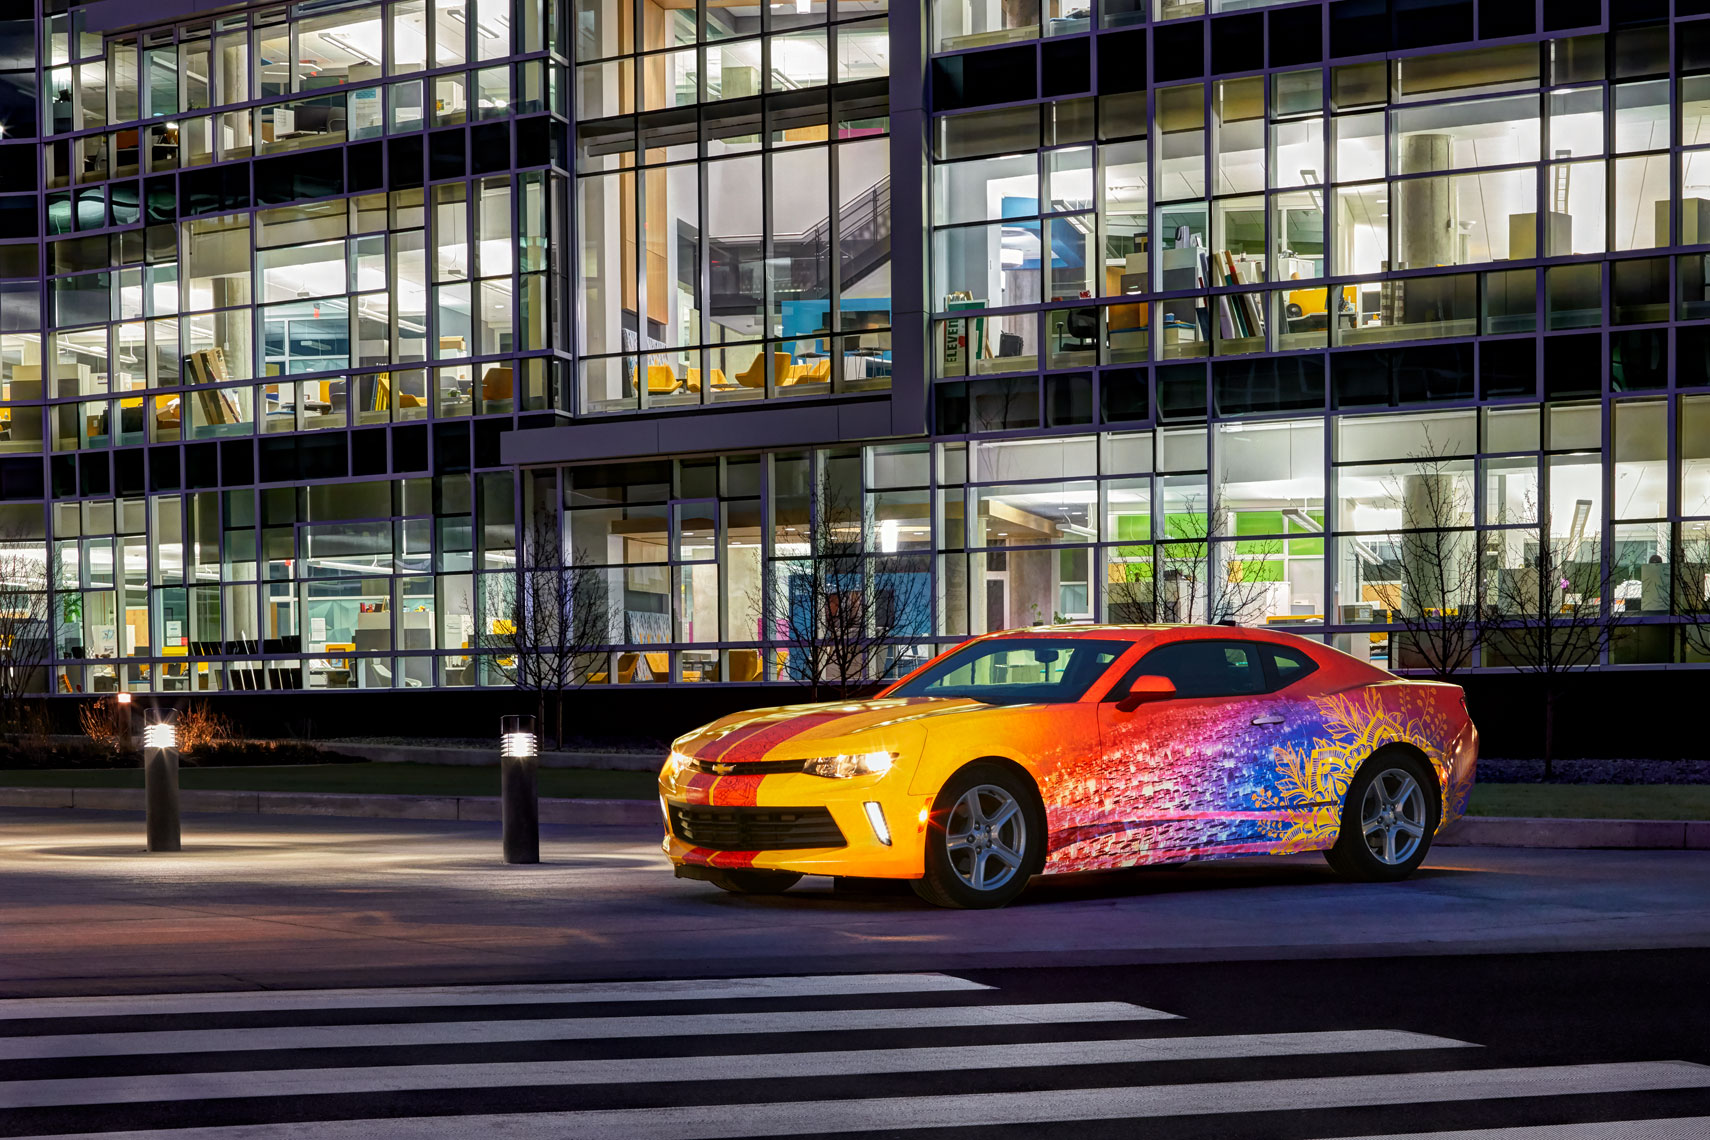 3M Reflective Wraps/Camero/corporate building/architectural photo